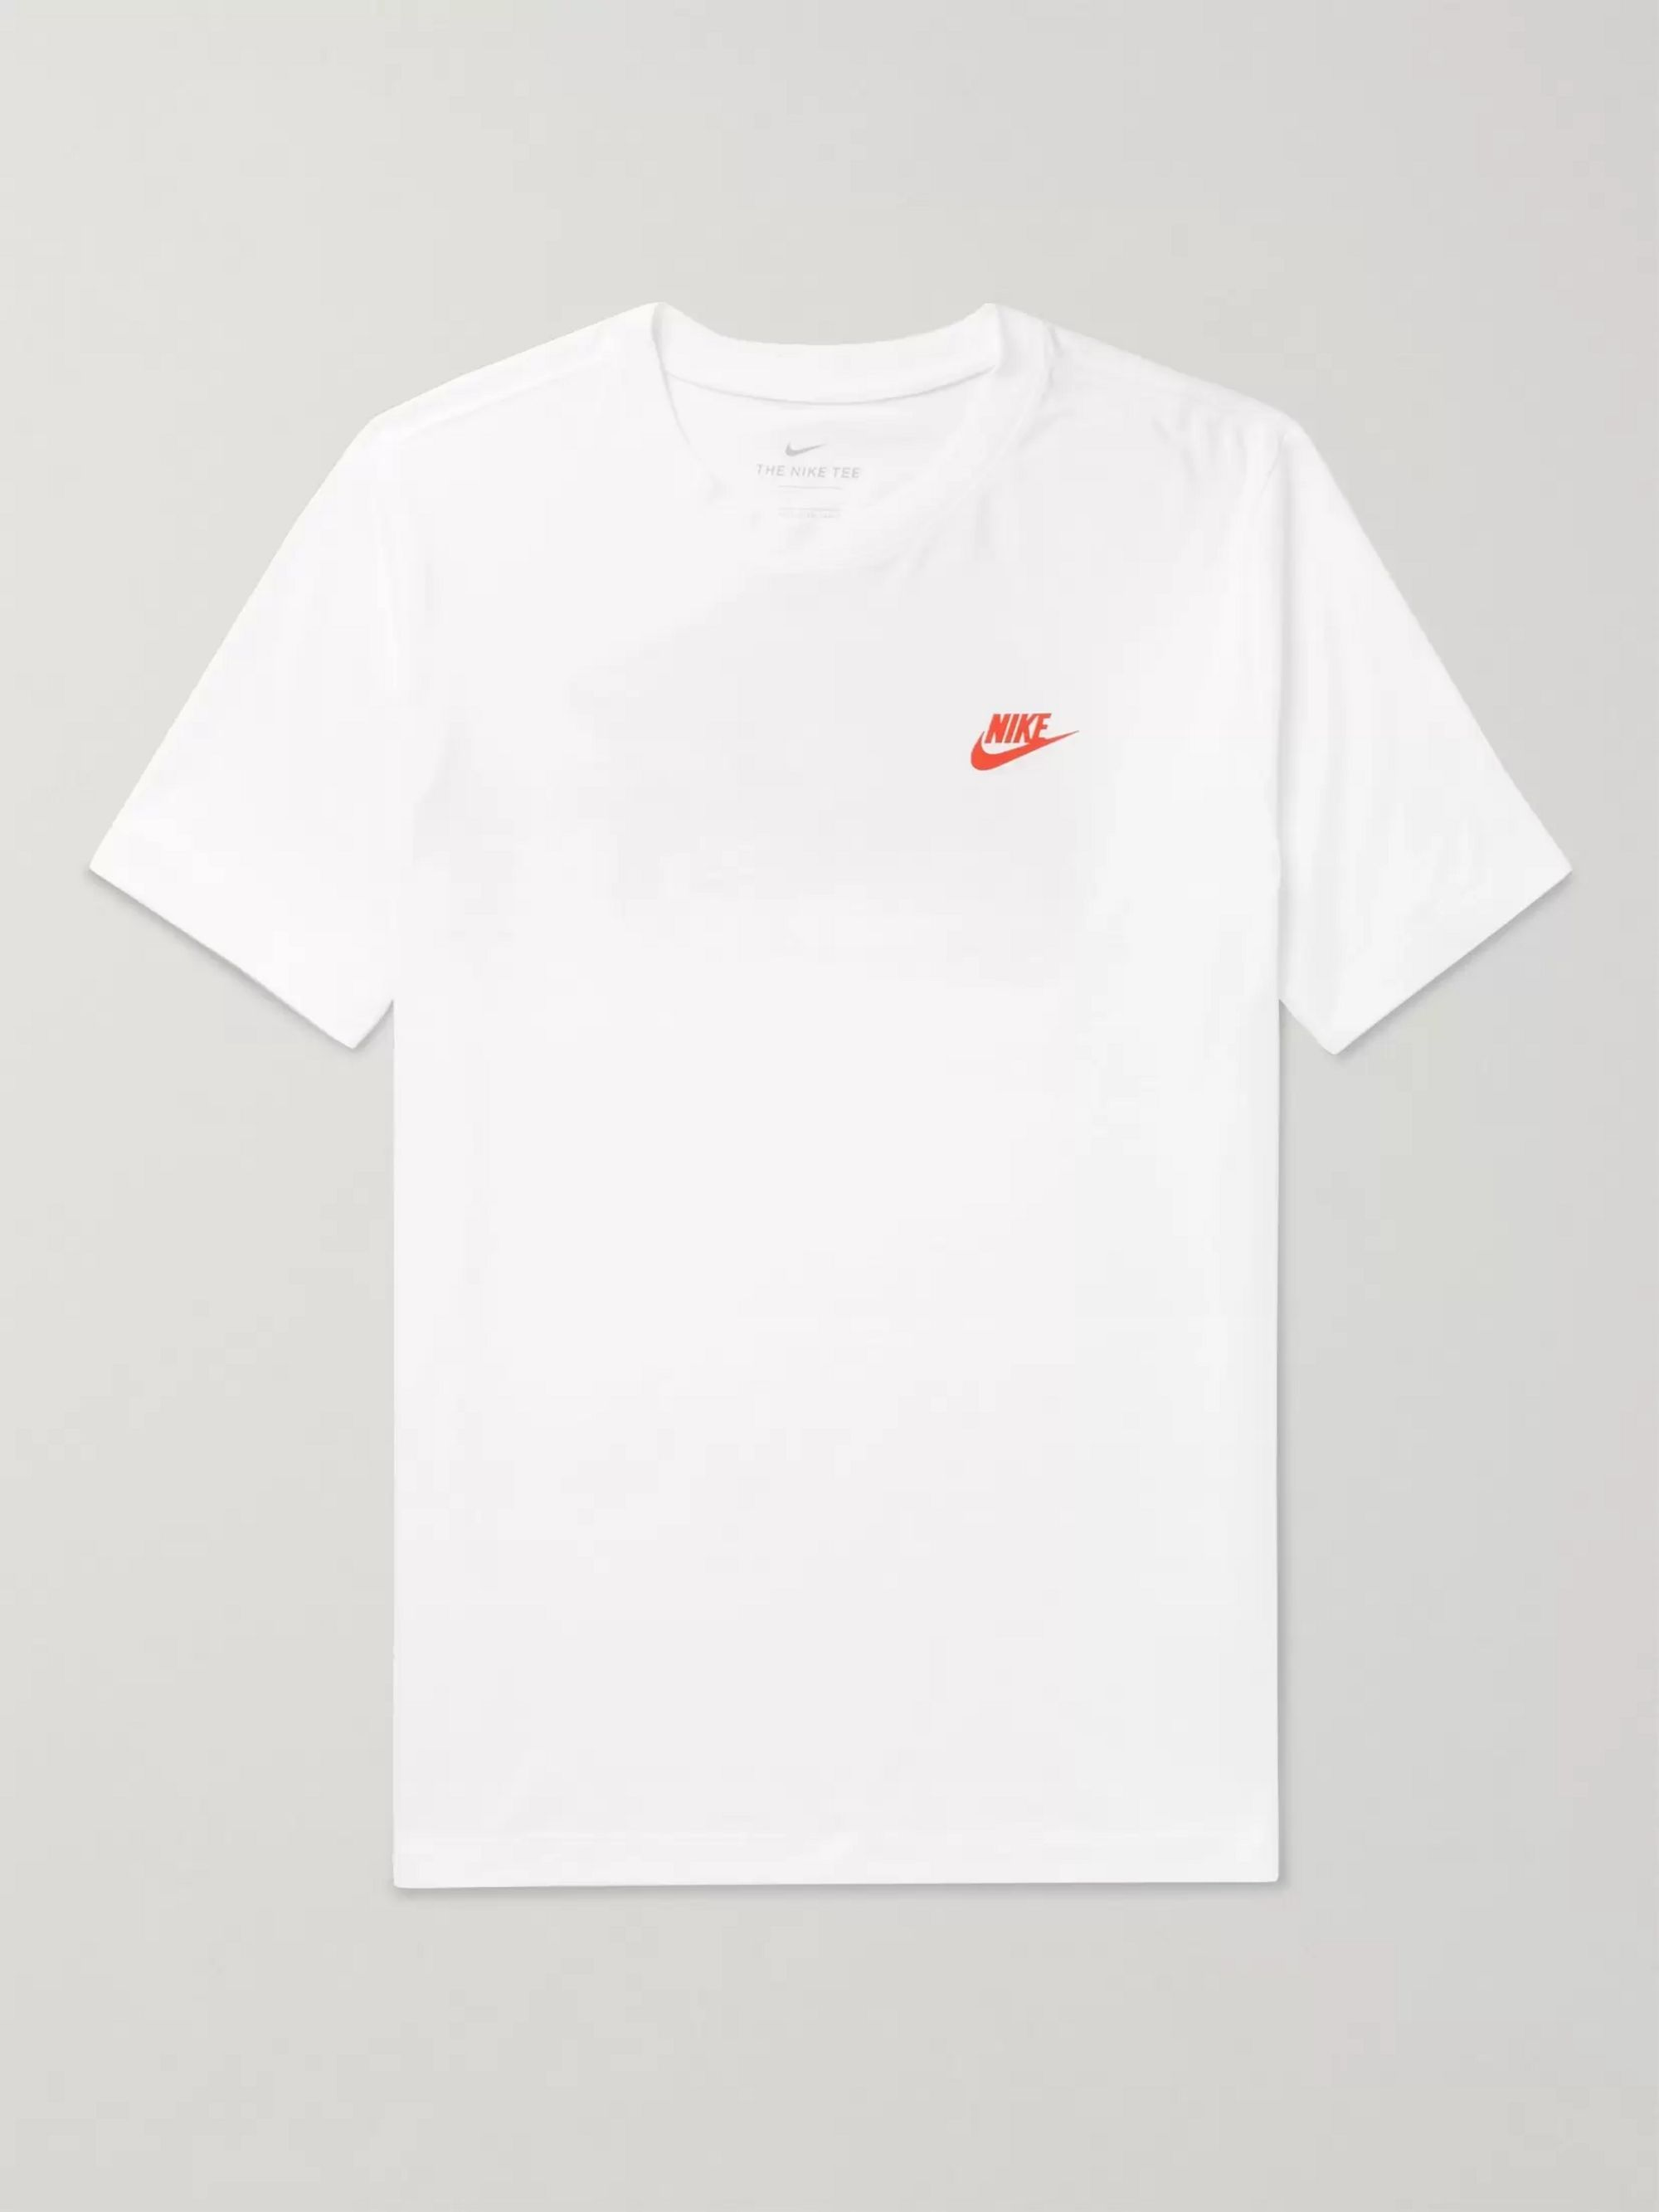 white and grey nike t shirt